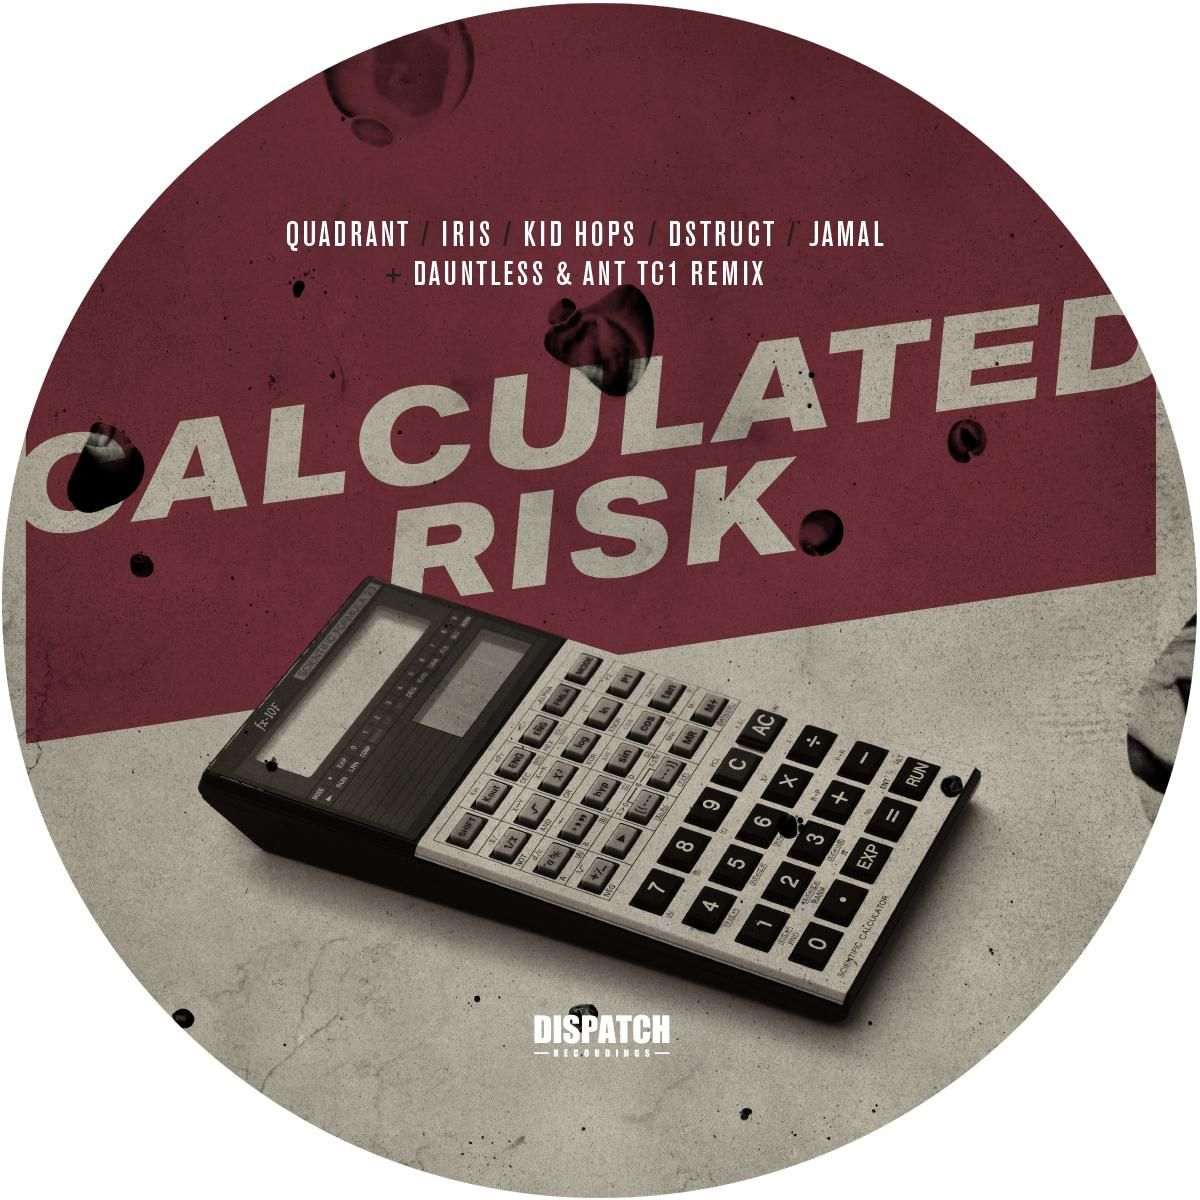 Quadrant & Iris - Calculated Risk EP